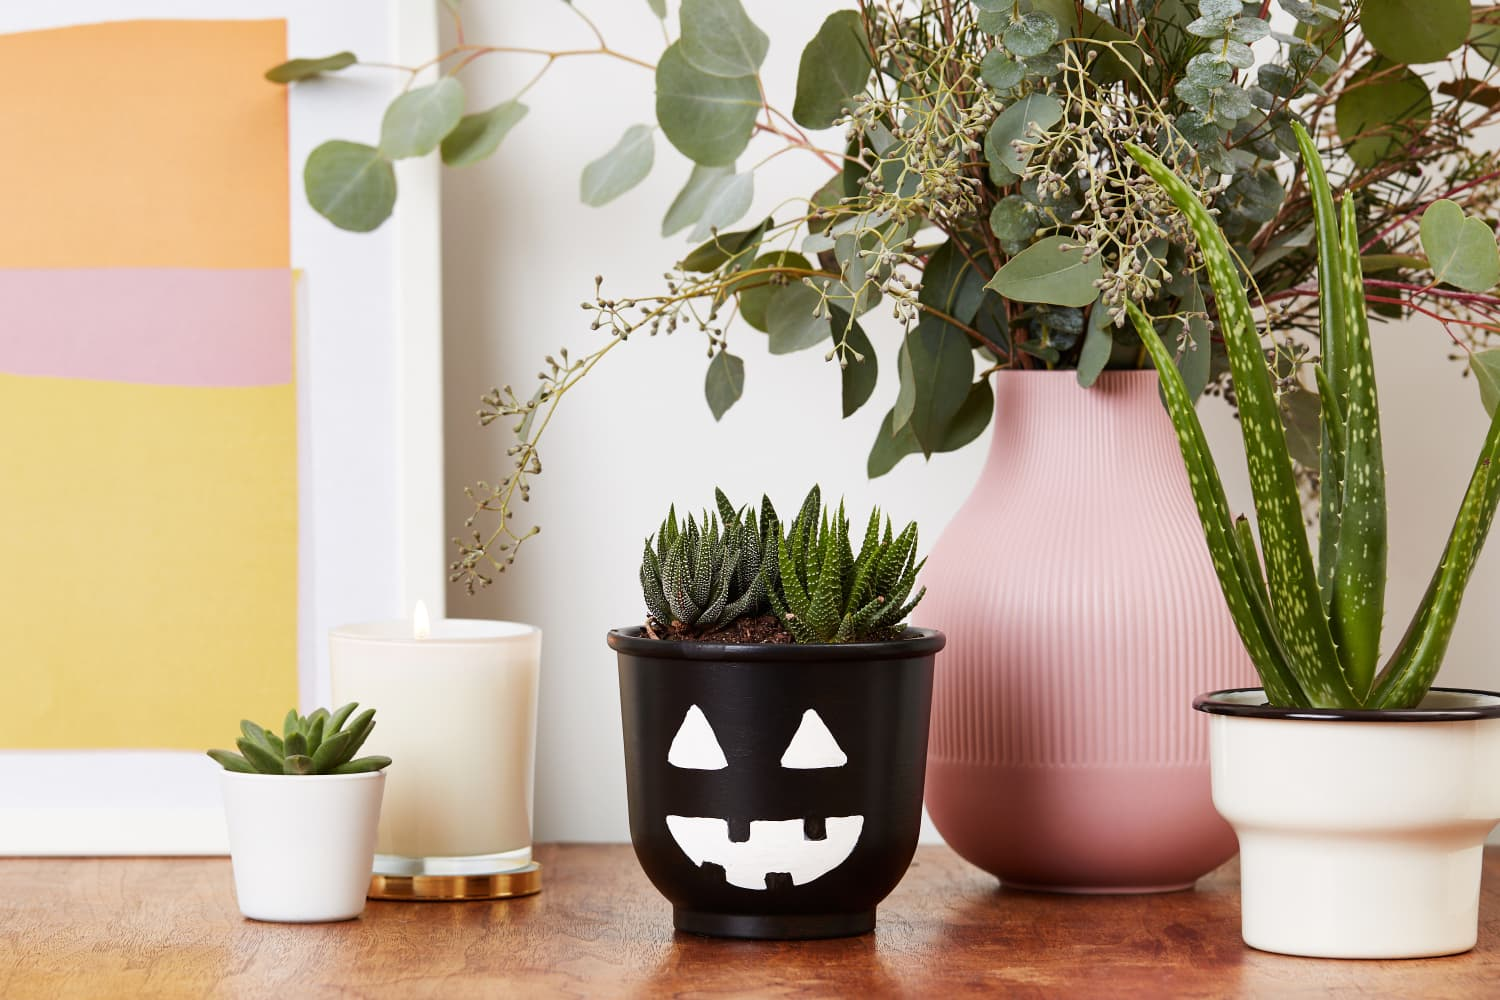 It Takes Just Two Easy Steps to Make This Terracotta Jack-o-Lantern